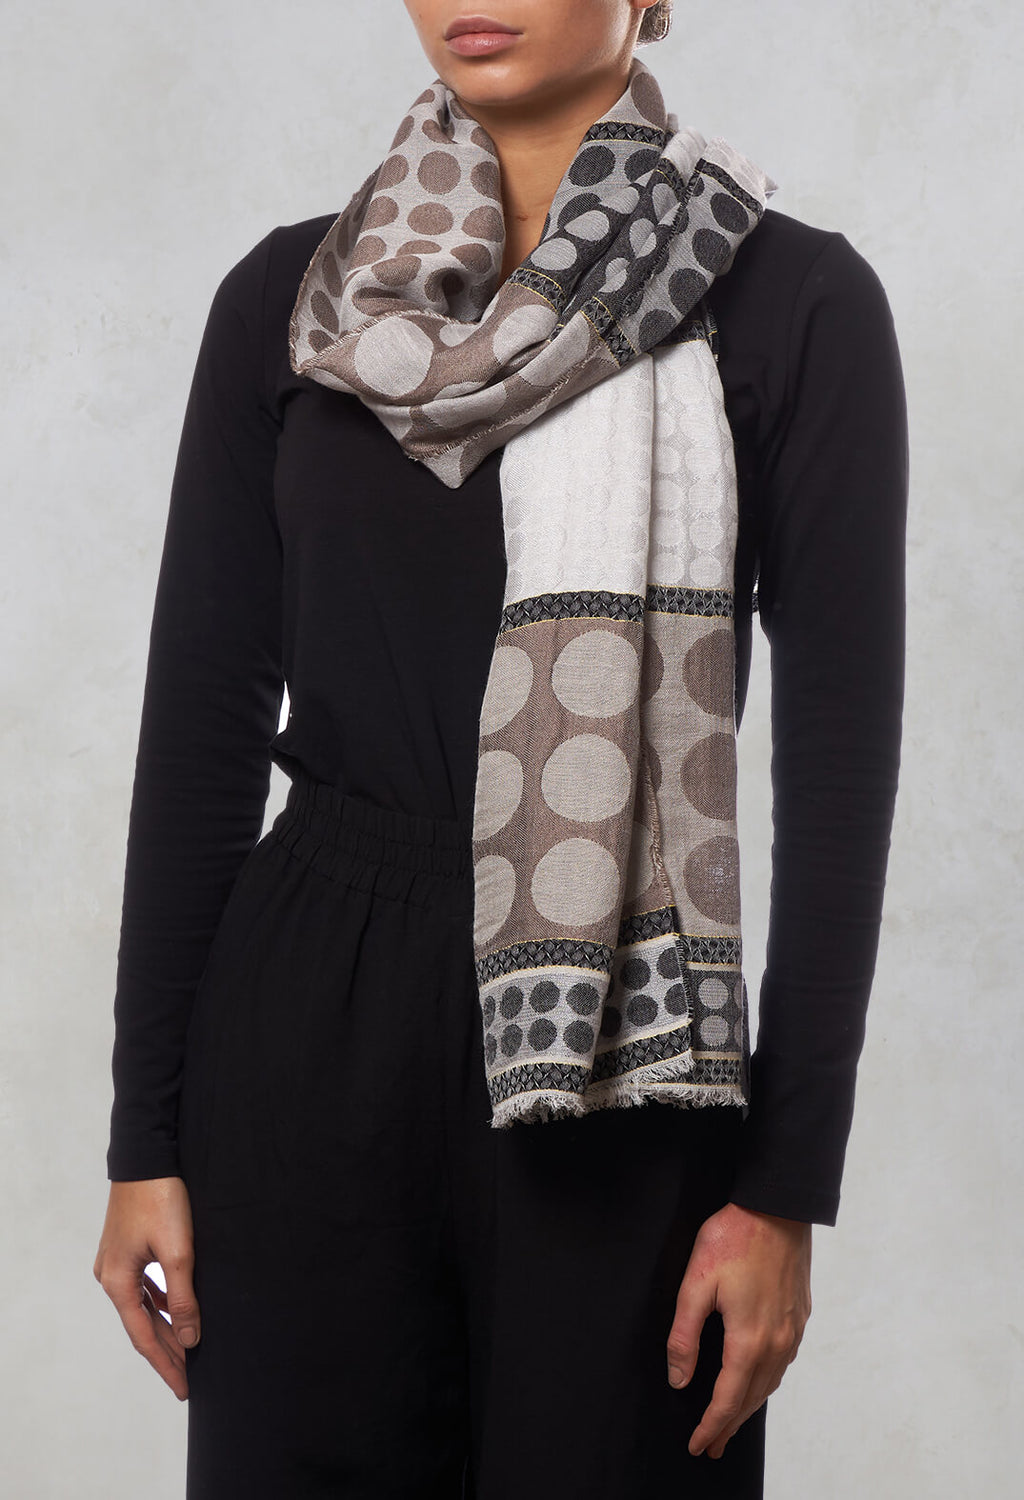 Spot Print Scarf in Brown